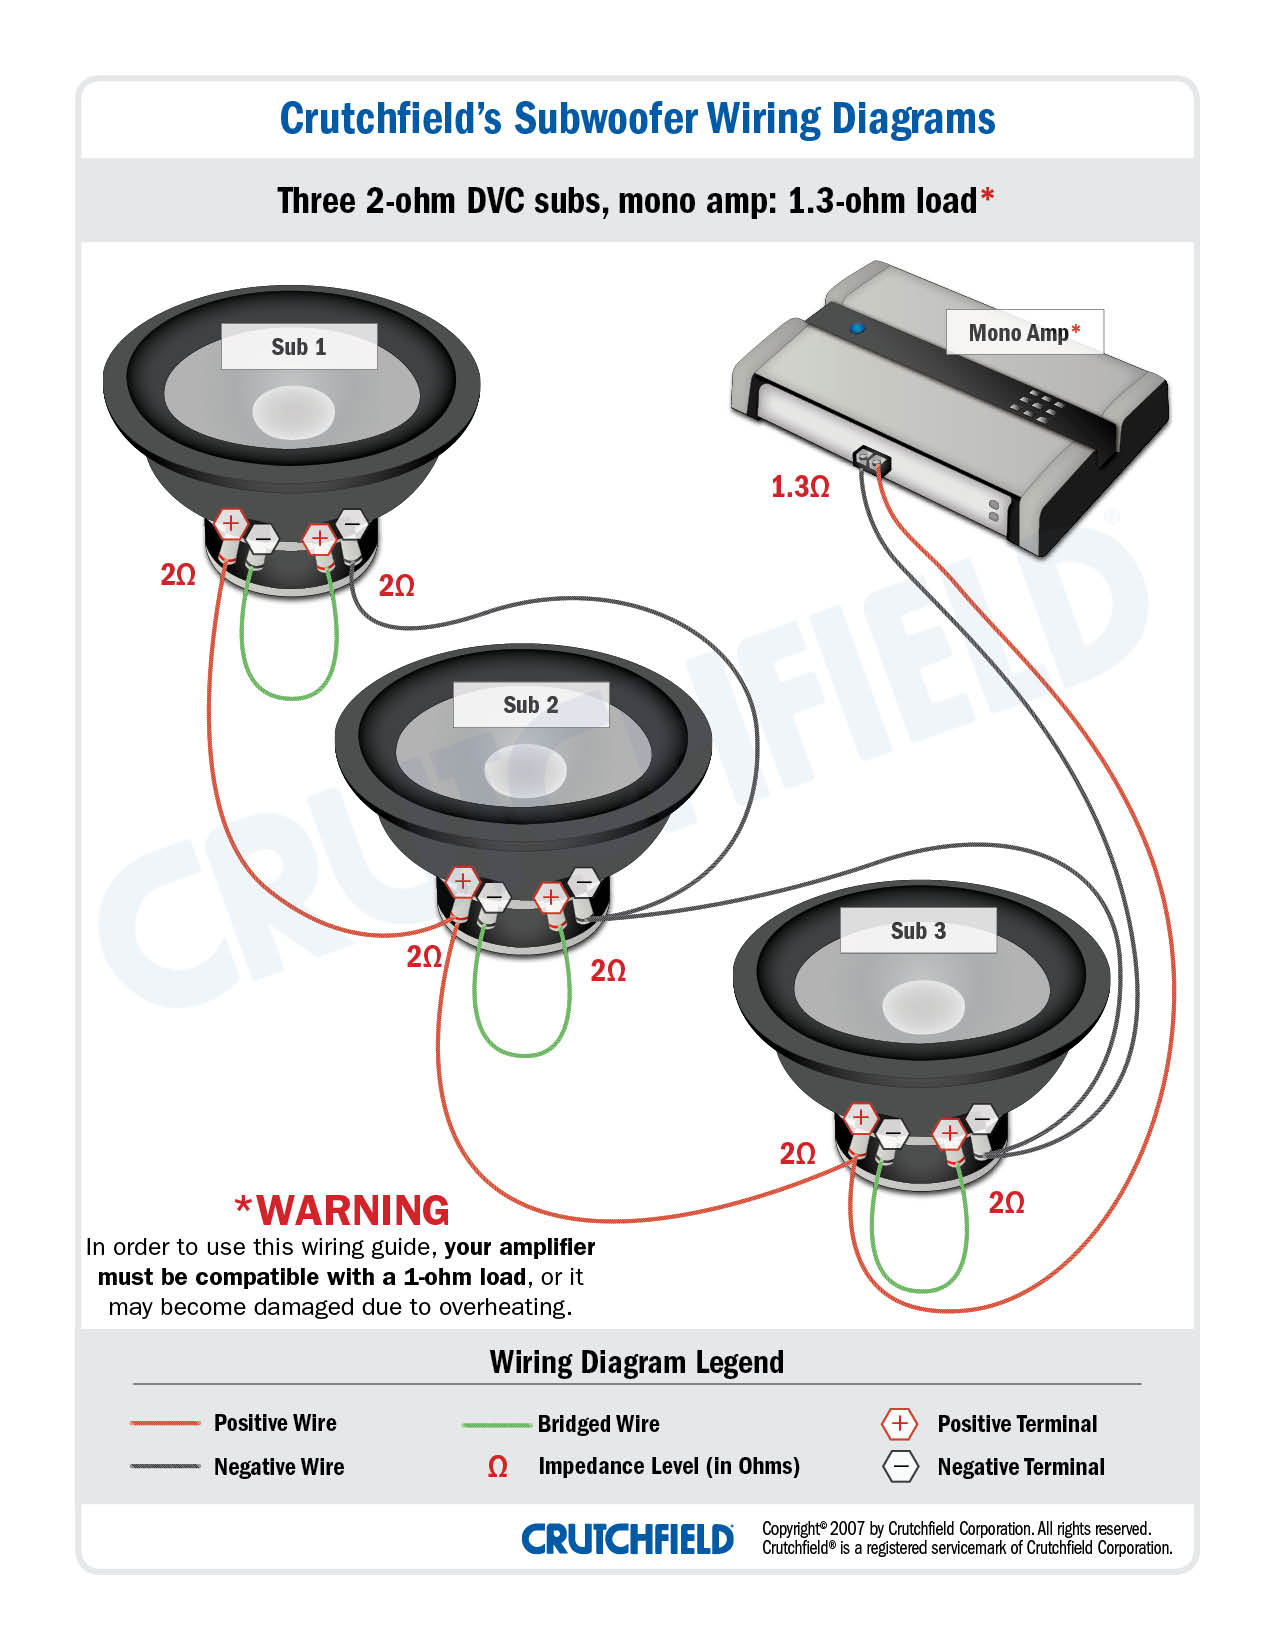 3 DVC 2 ohm mono low imp subwoofer wiring diagrams  at mifinder.co